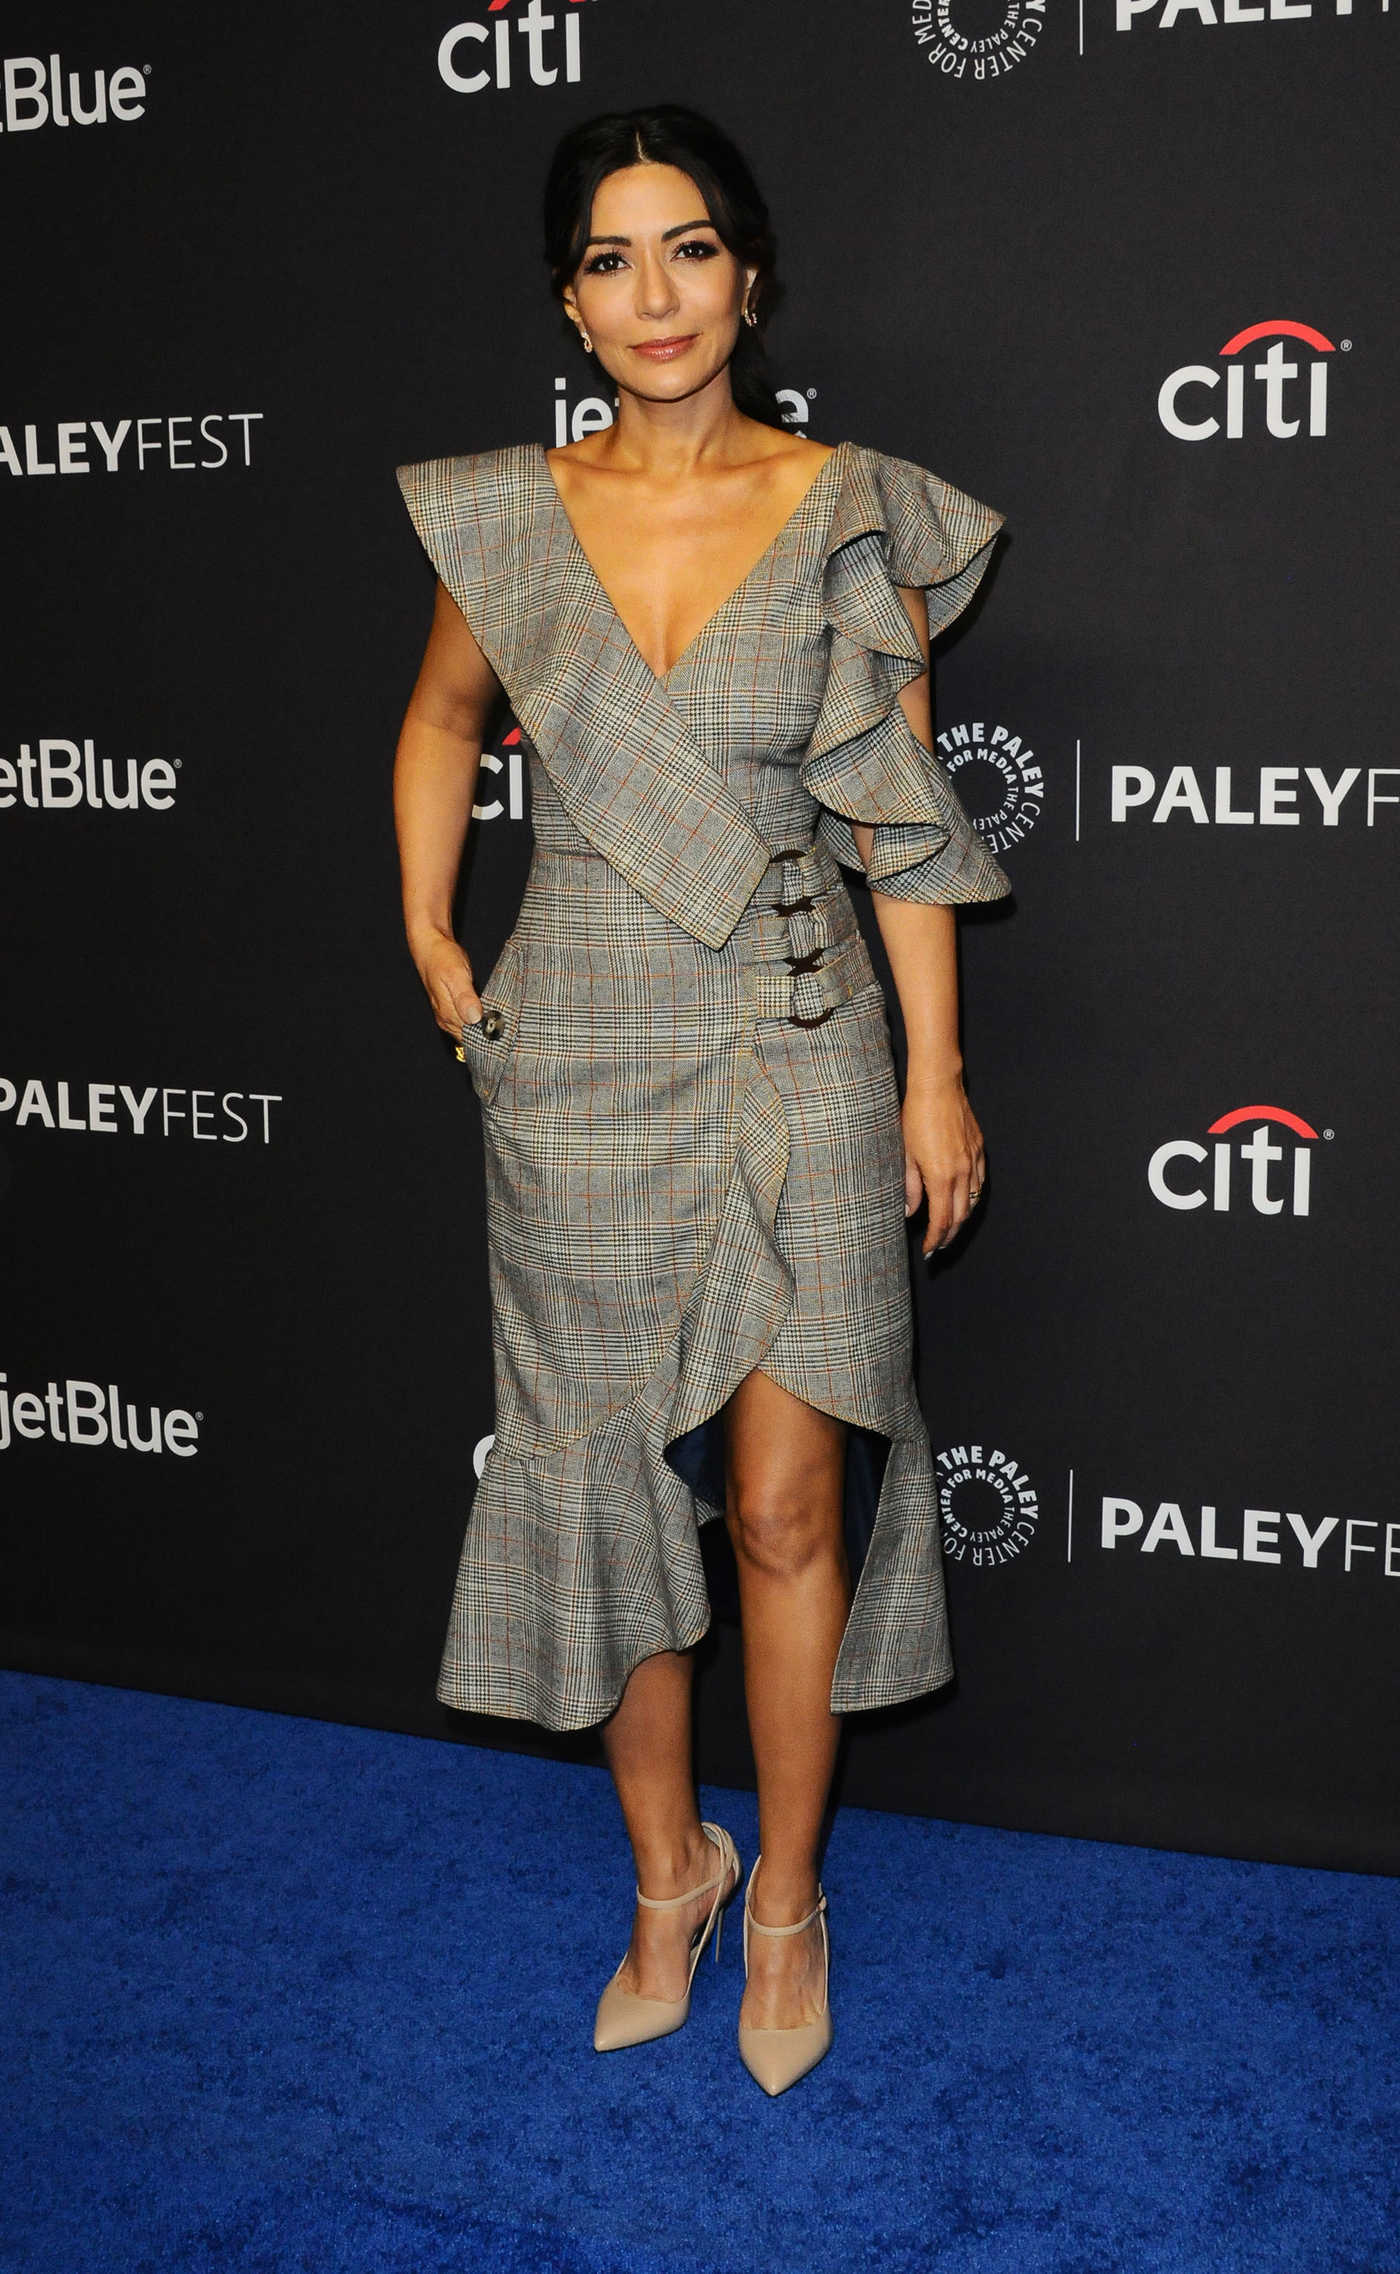 Marisol Nichols at the Riverdale TV Show Presentation During the Paleyfest in Los Angeles 03/25/2018